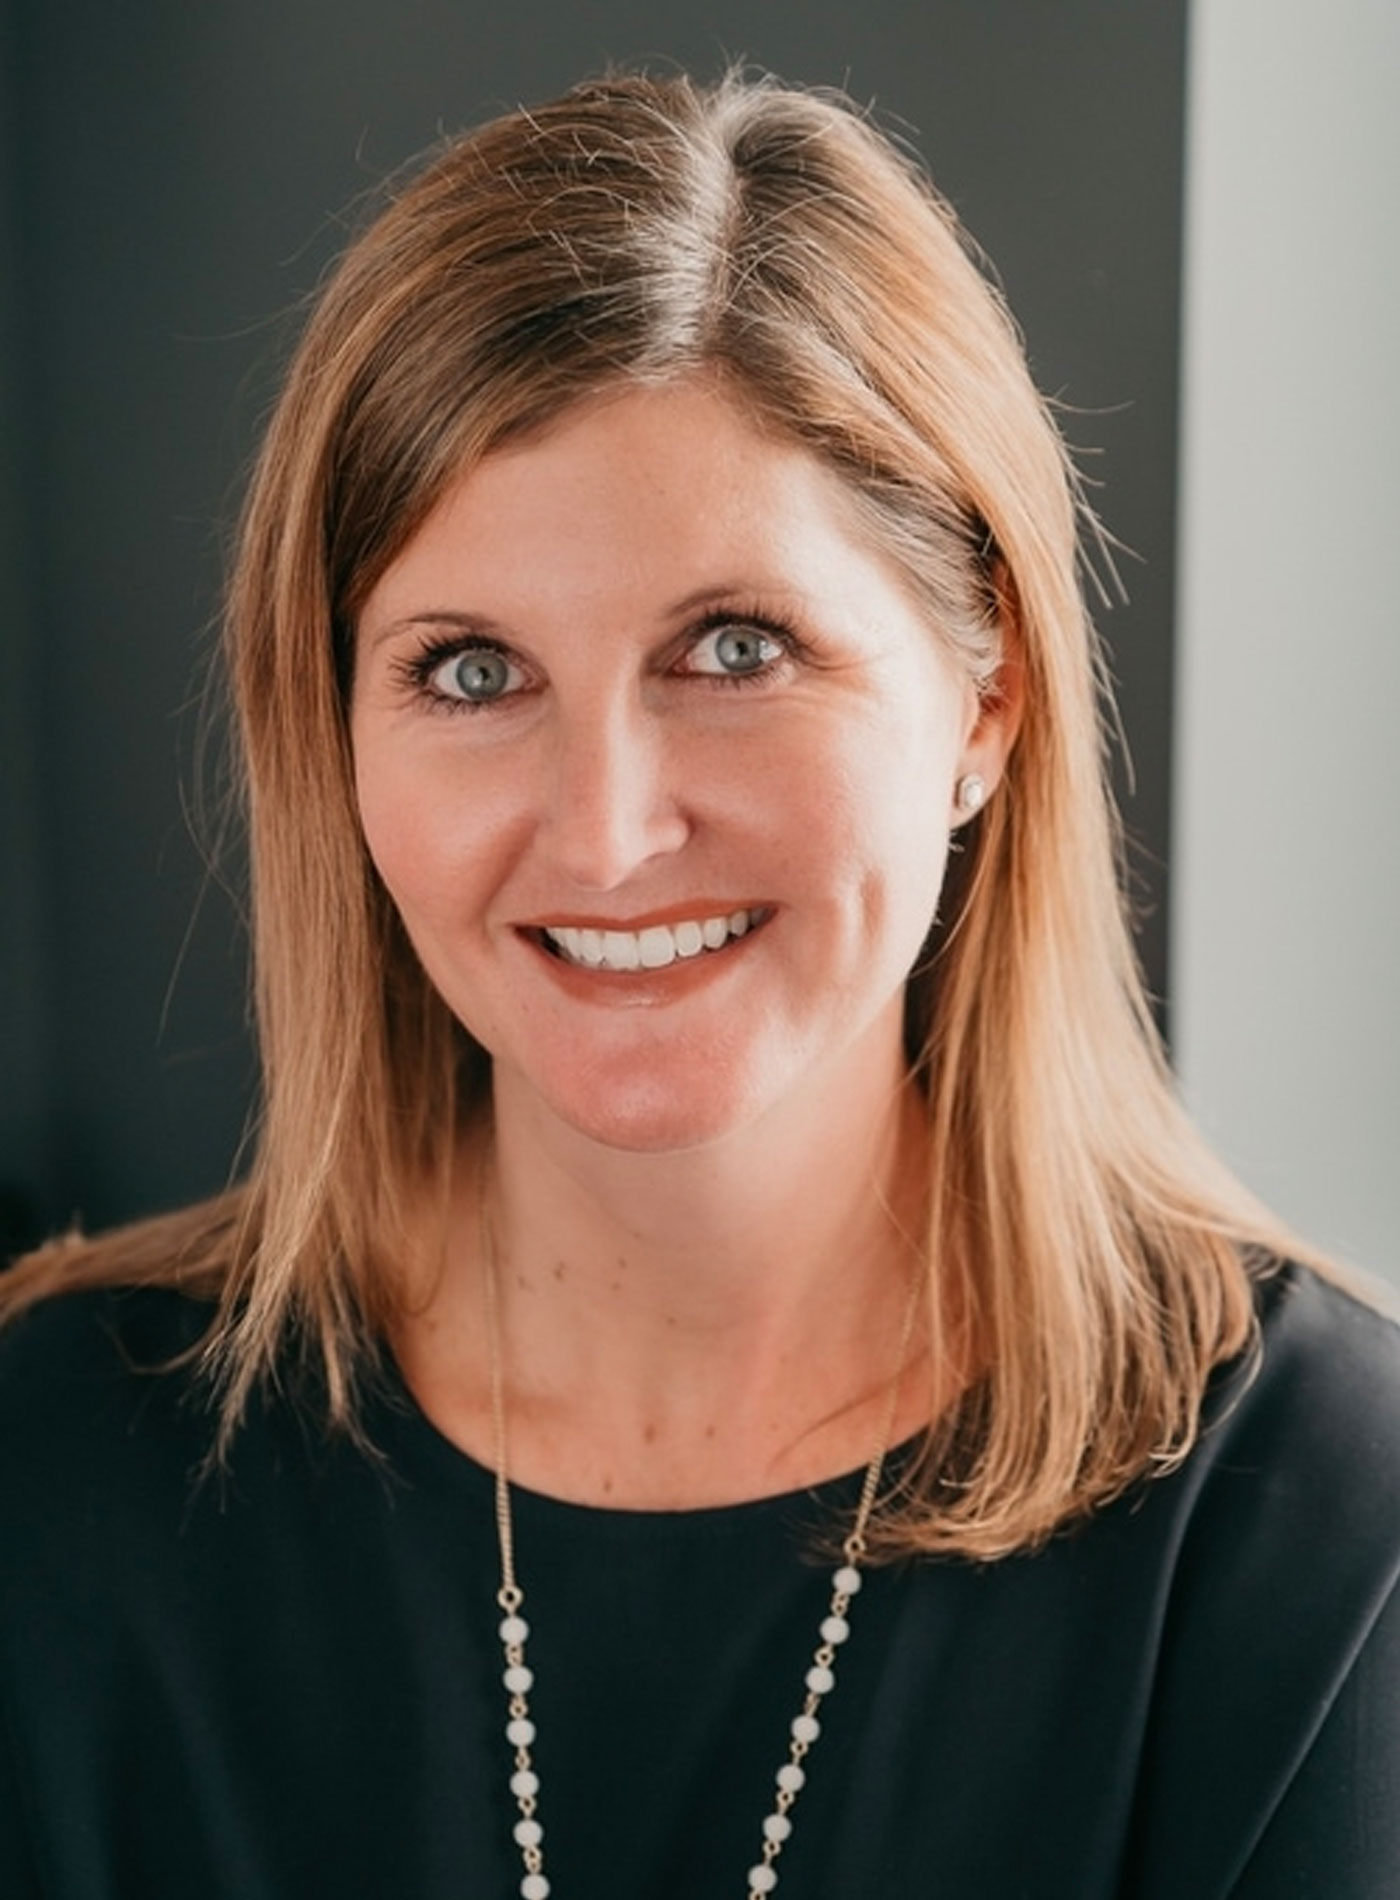 Amy Magrini - Vand Solutions Assistant